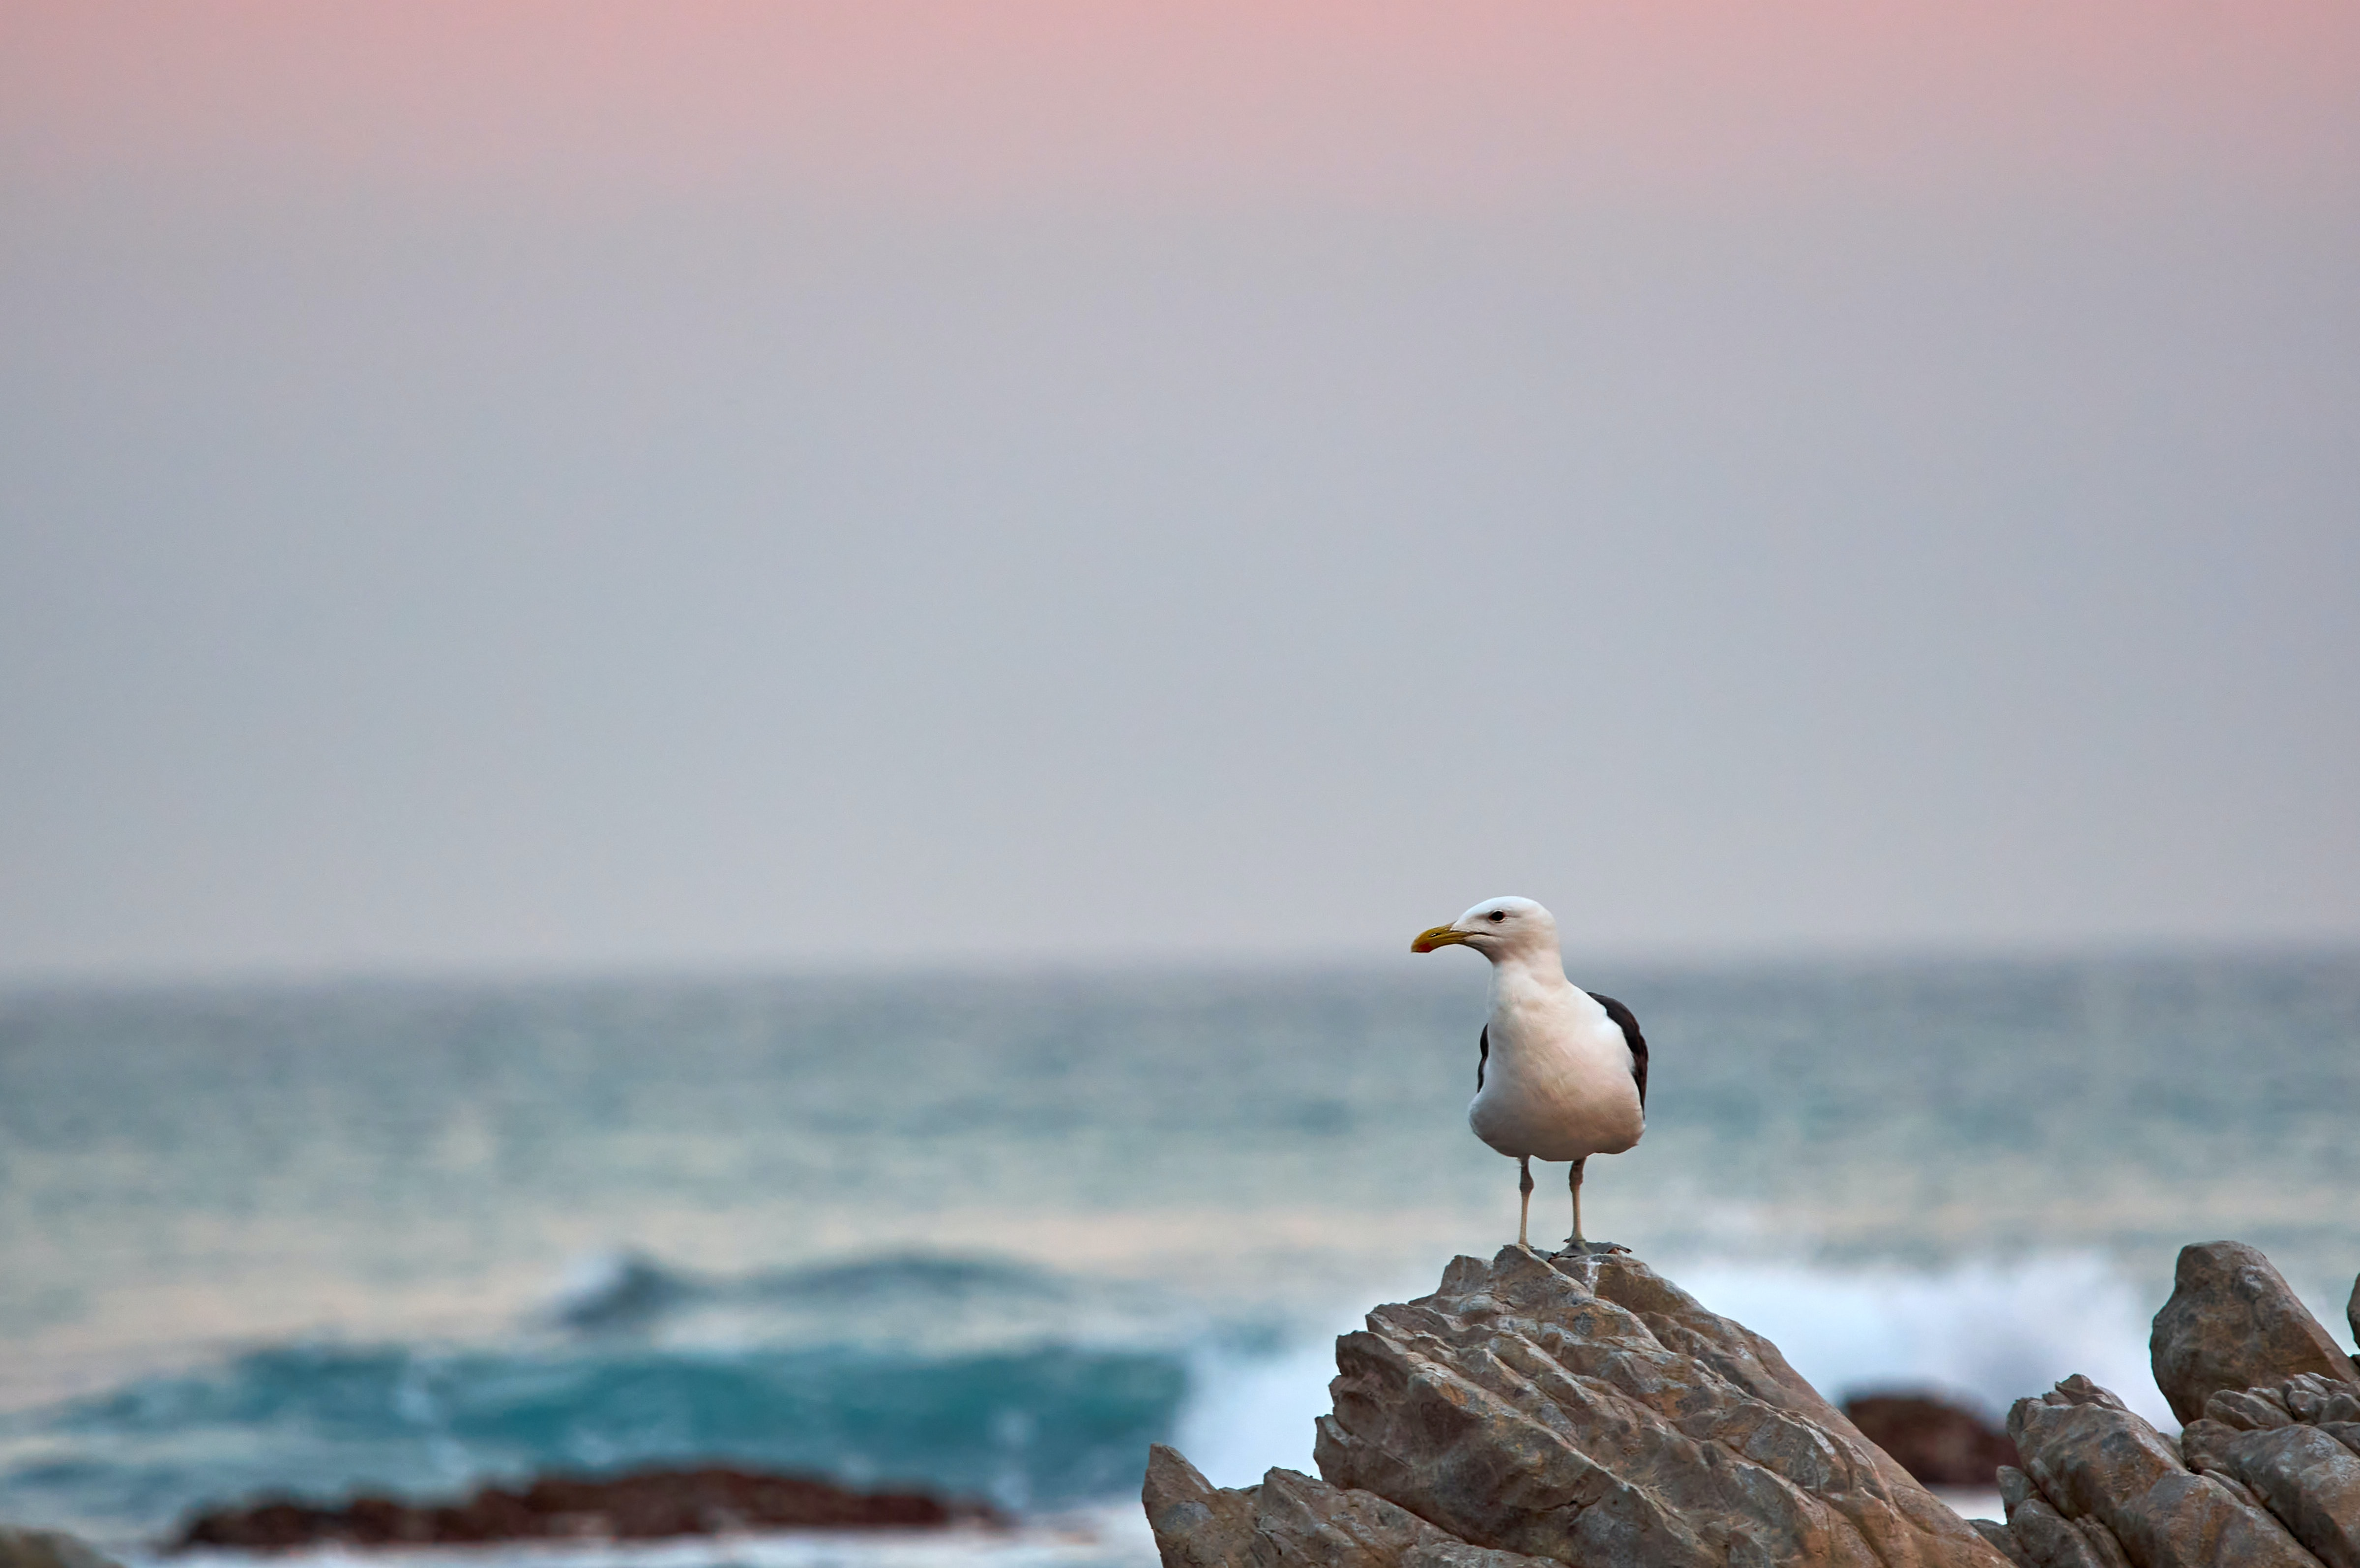 56225 download wallpaper Animals, Gull, Seagull, Bird, Beak, Rock, Stone, Sea screensavers and pictures for free